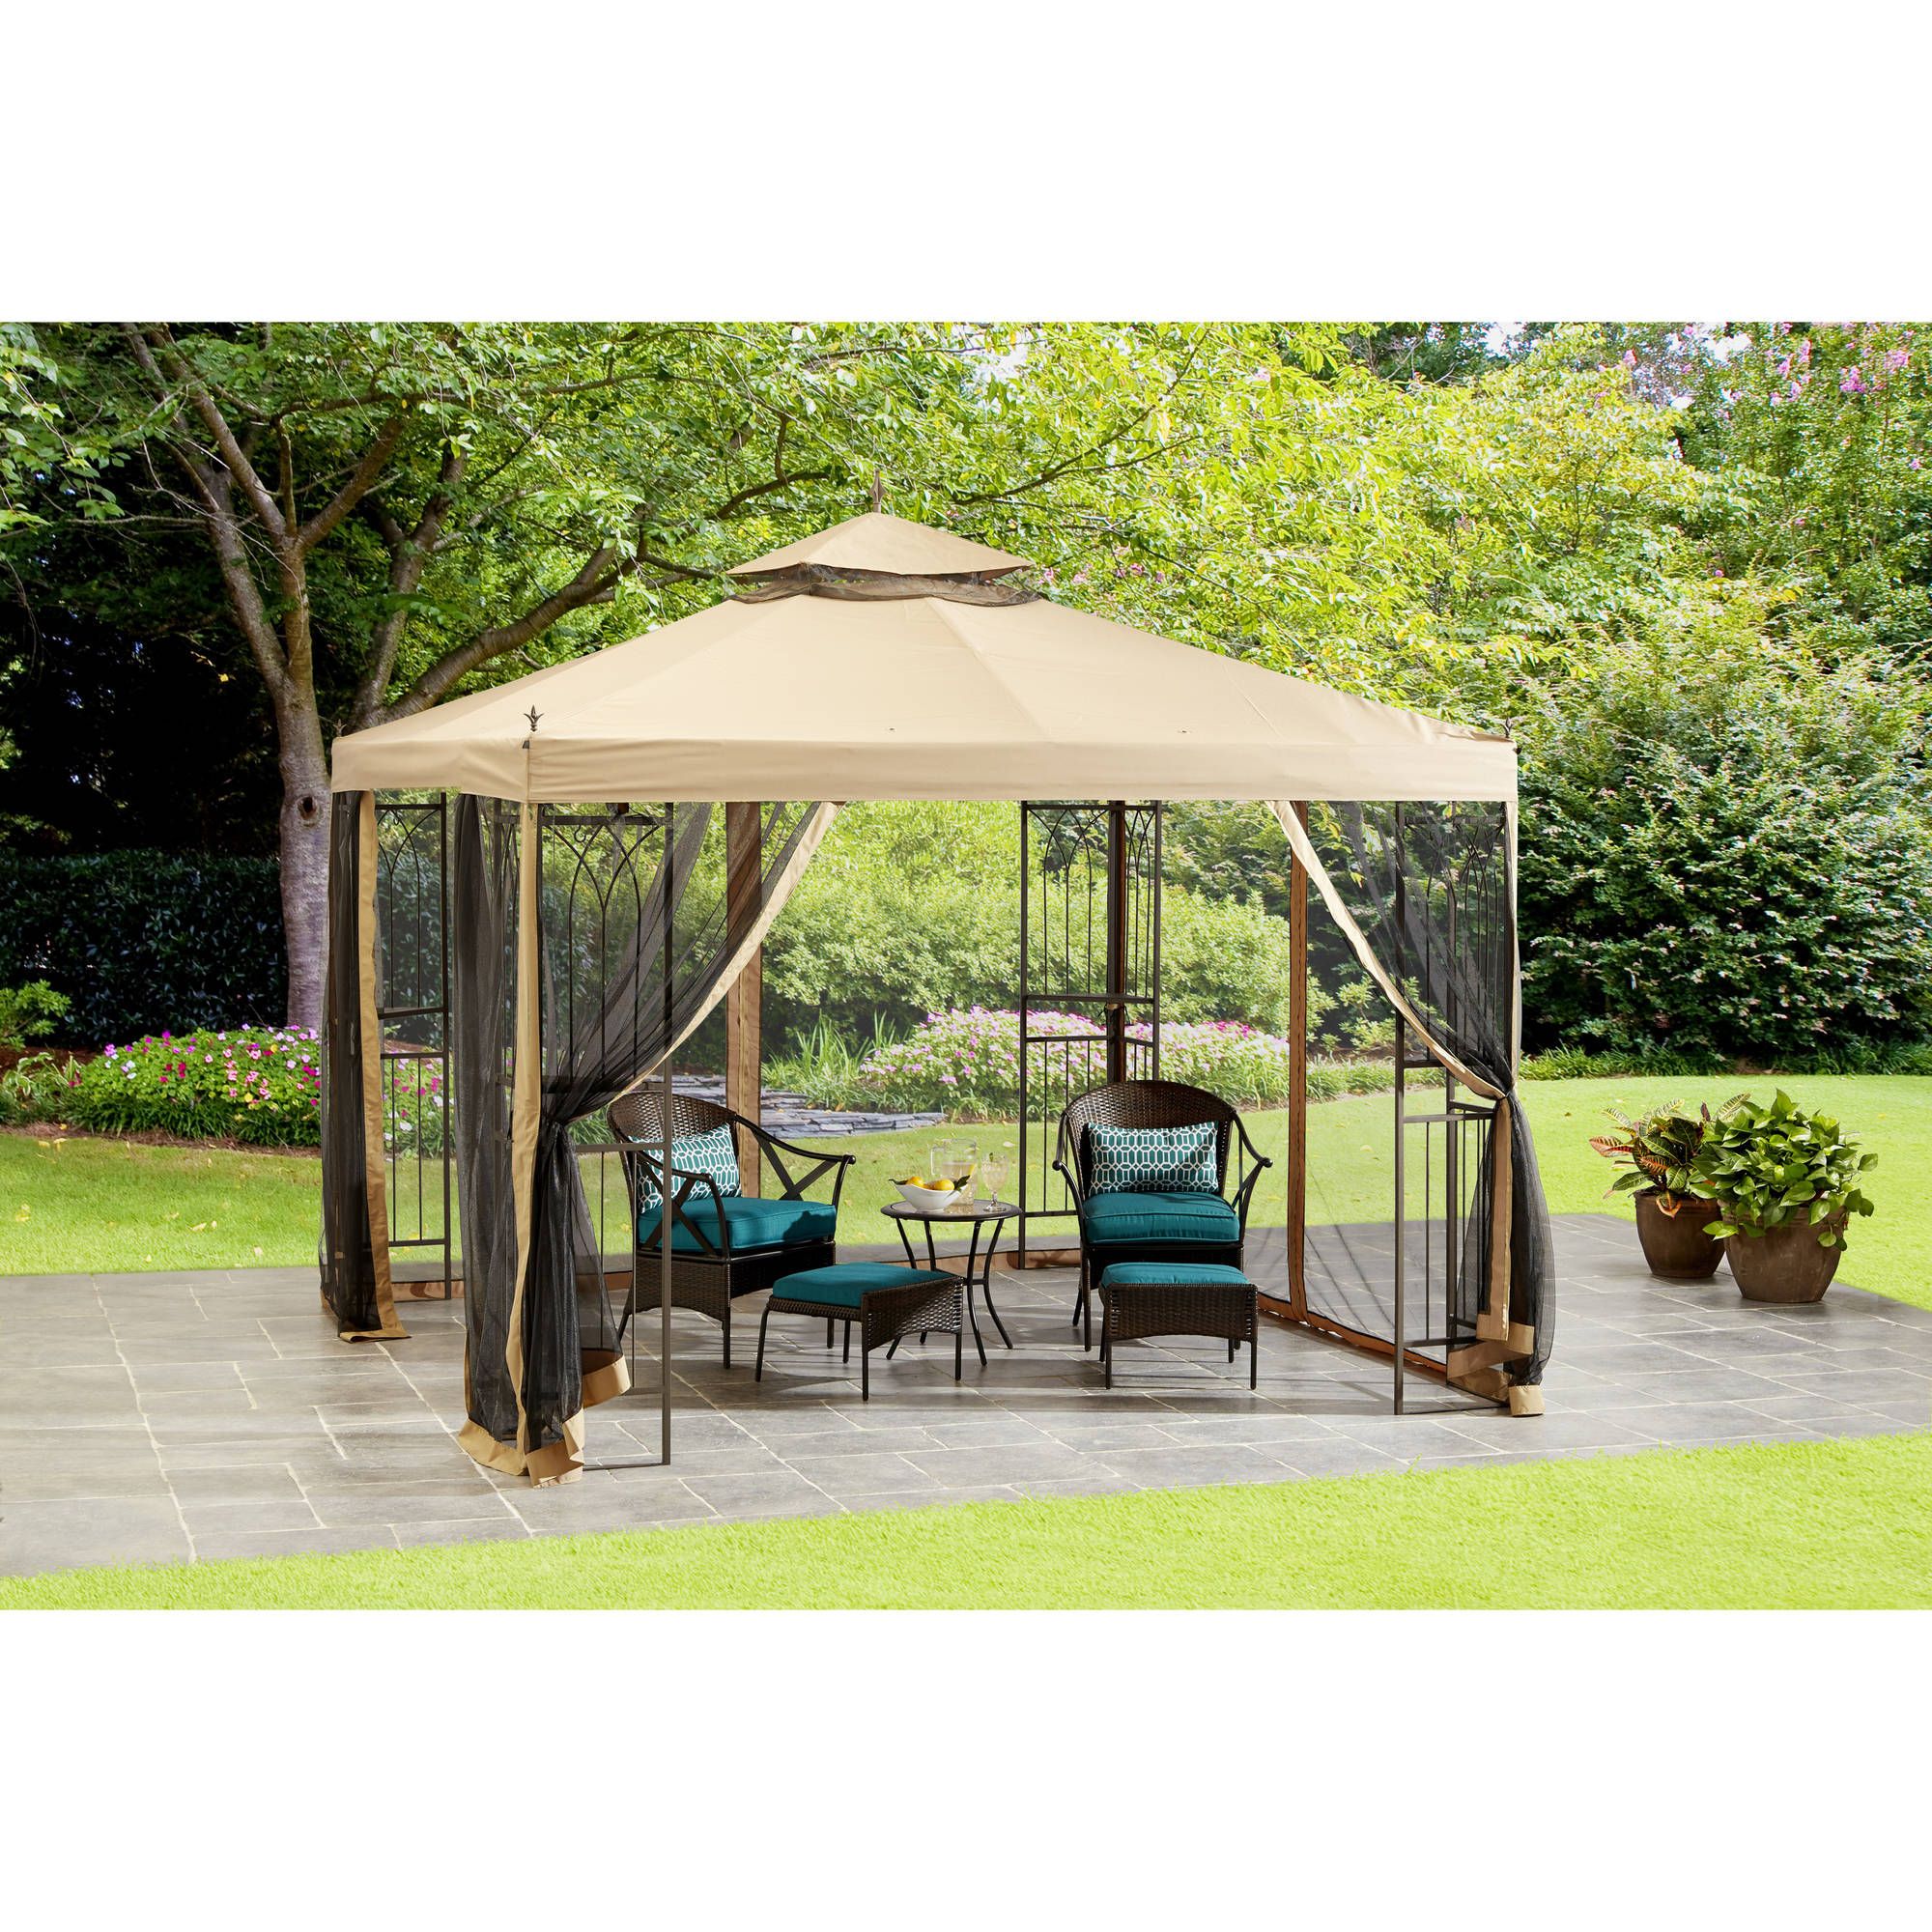 Mainstays 10' x 10' Steel Easy Assembly Gazebo with Netting